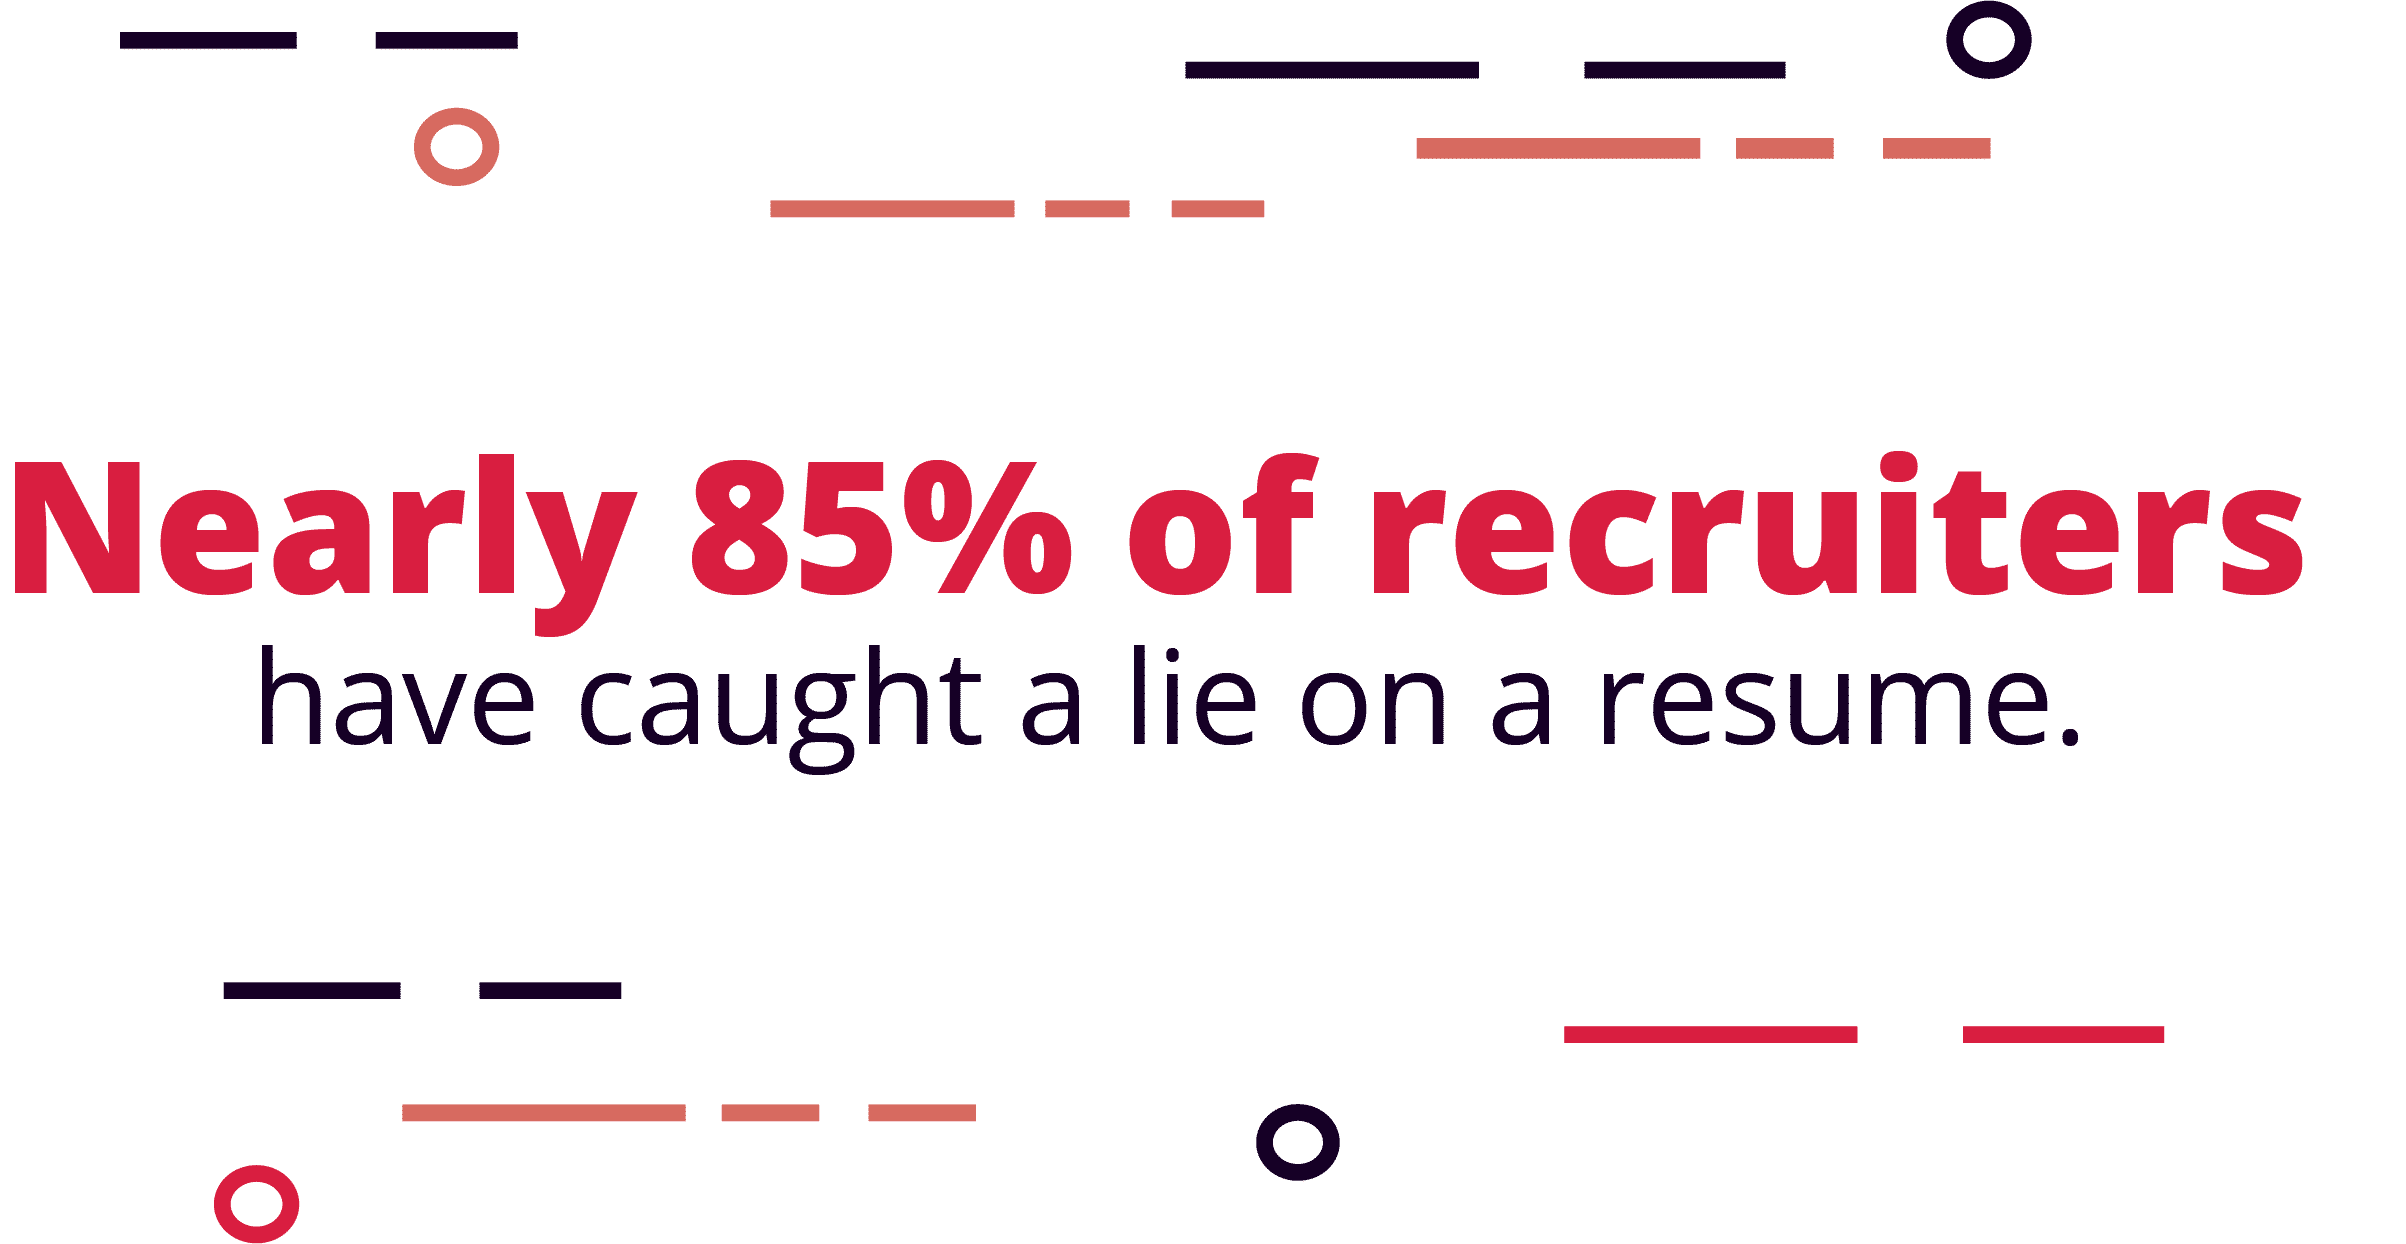 Nearly 85% of recruiters have caught a lie on a resume